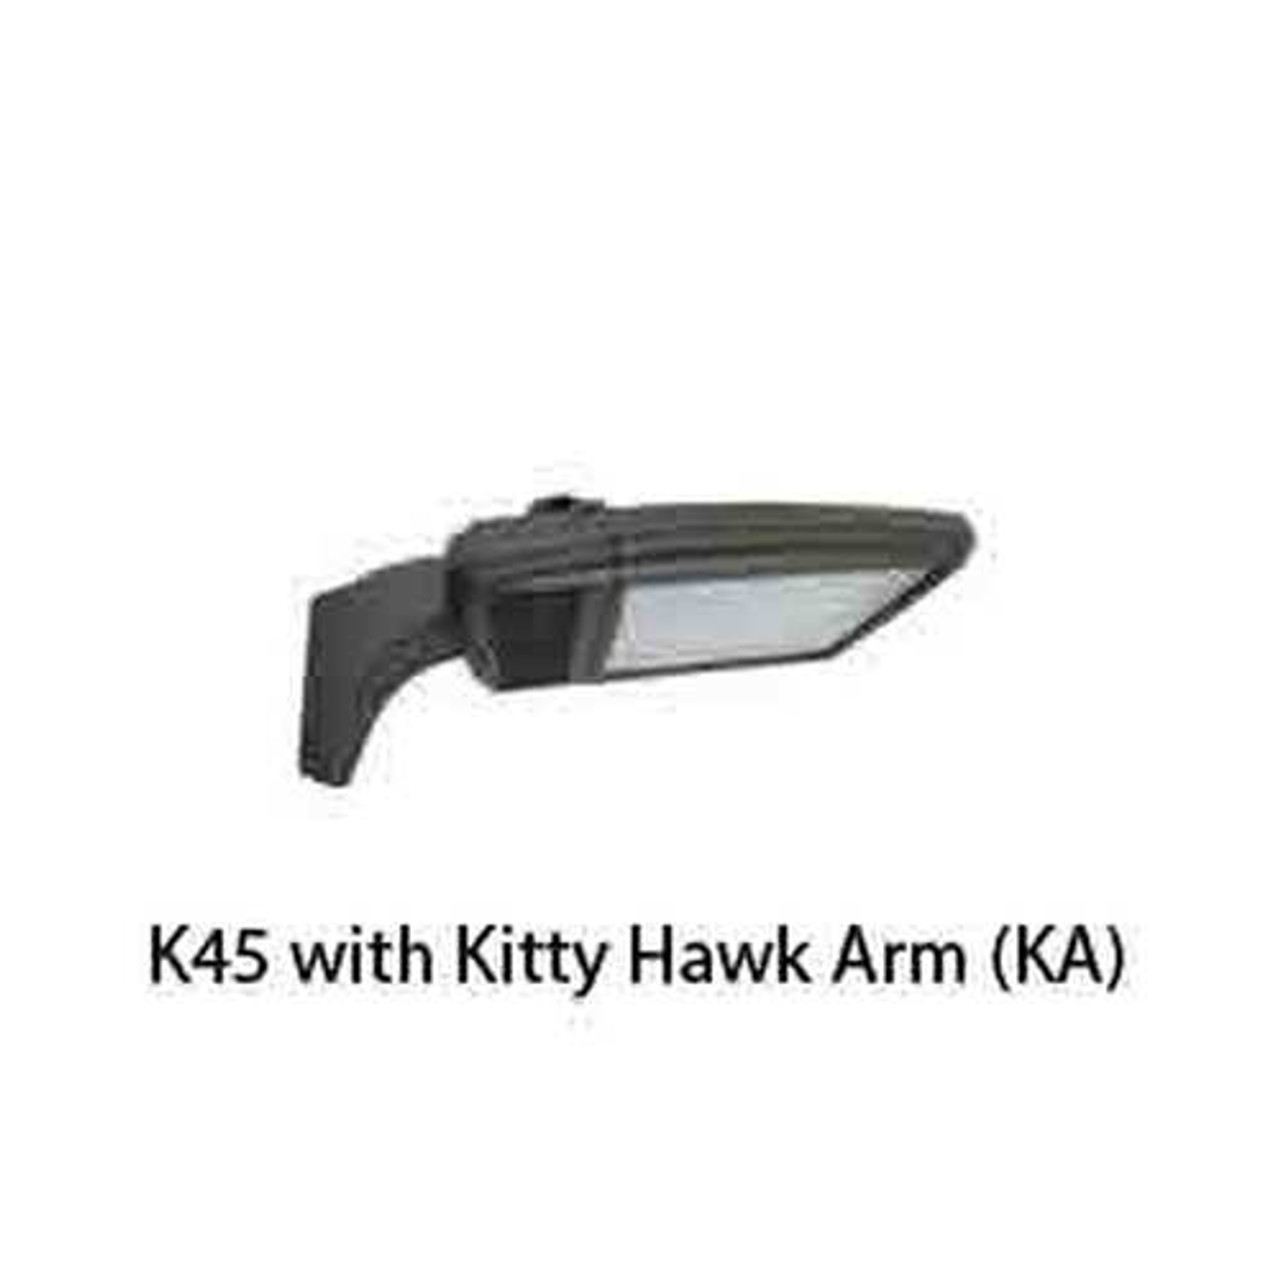 K45 with Kitty Hawk Arm (KA)